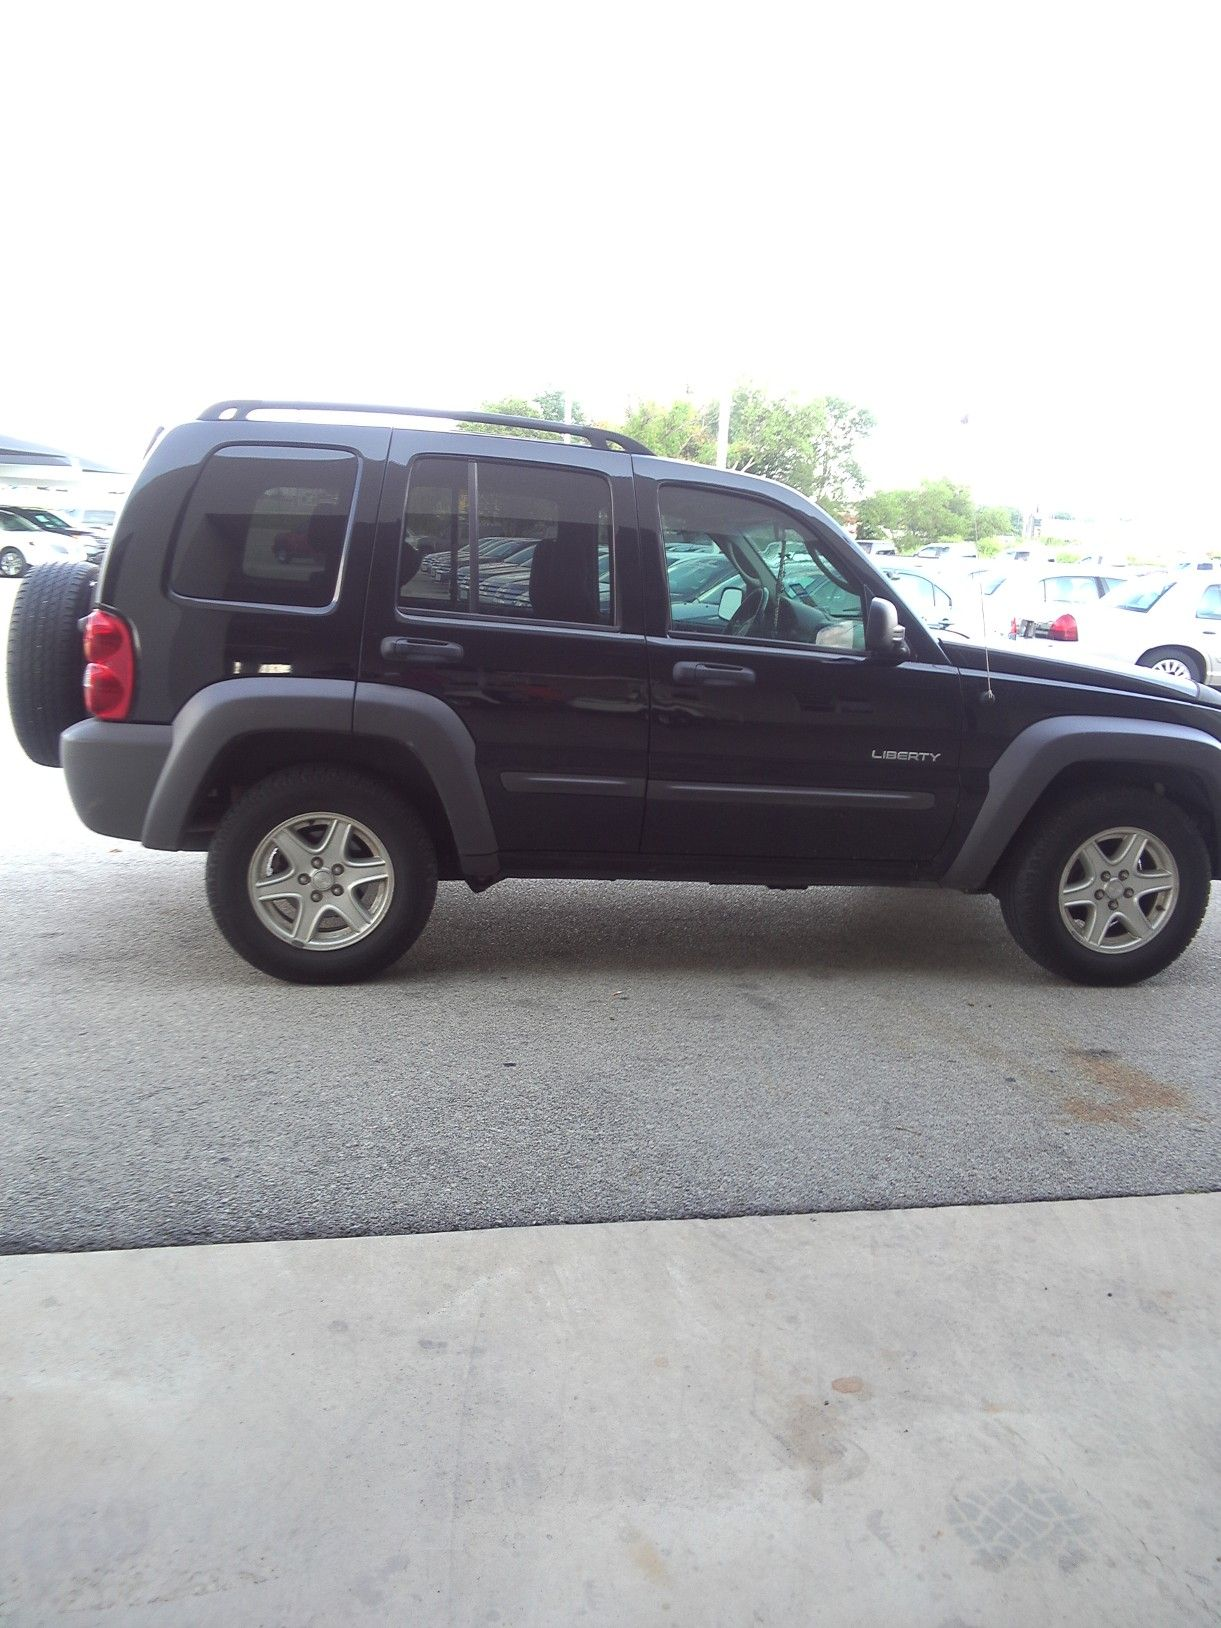 2004 Jeep Liberty In Arey S Garage Sale In Brownwood Tx For